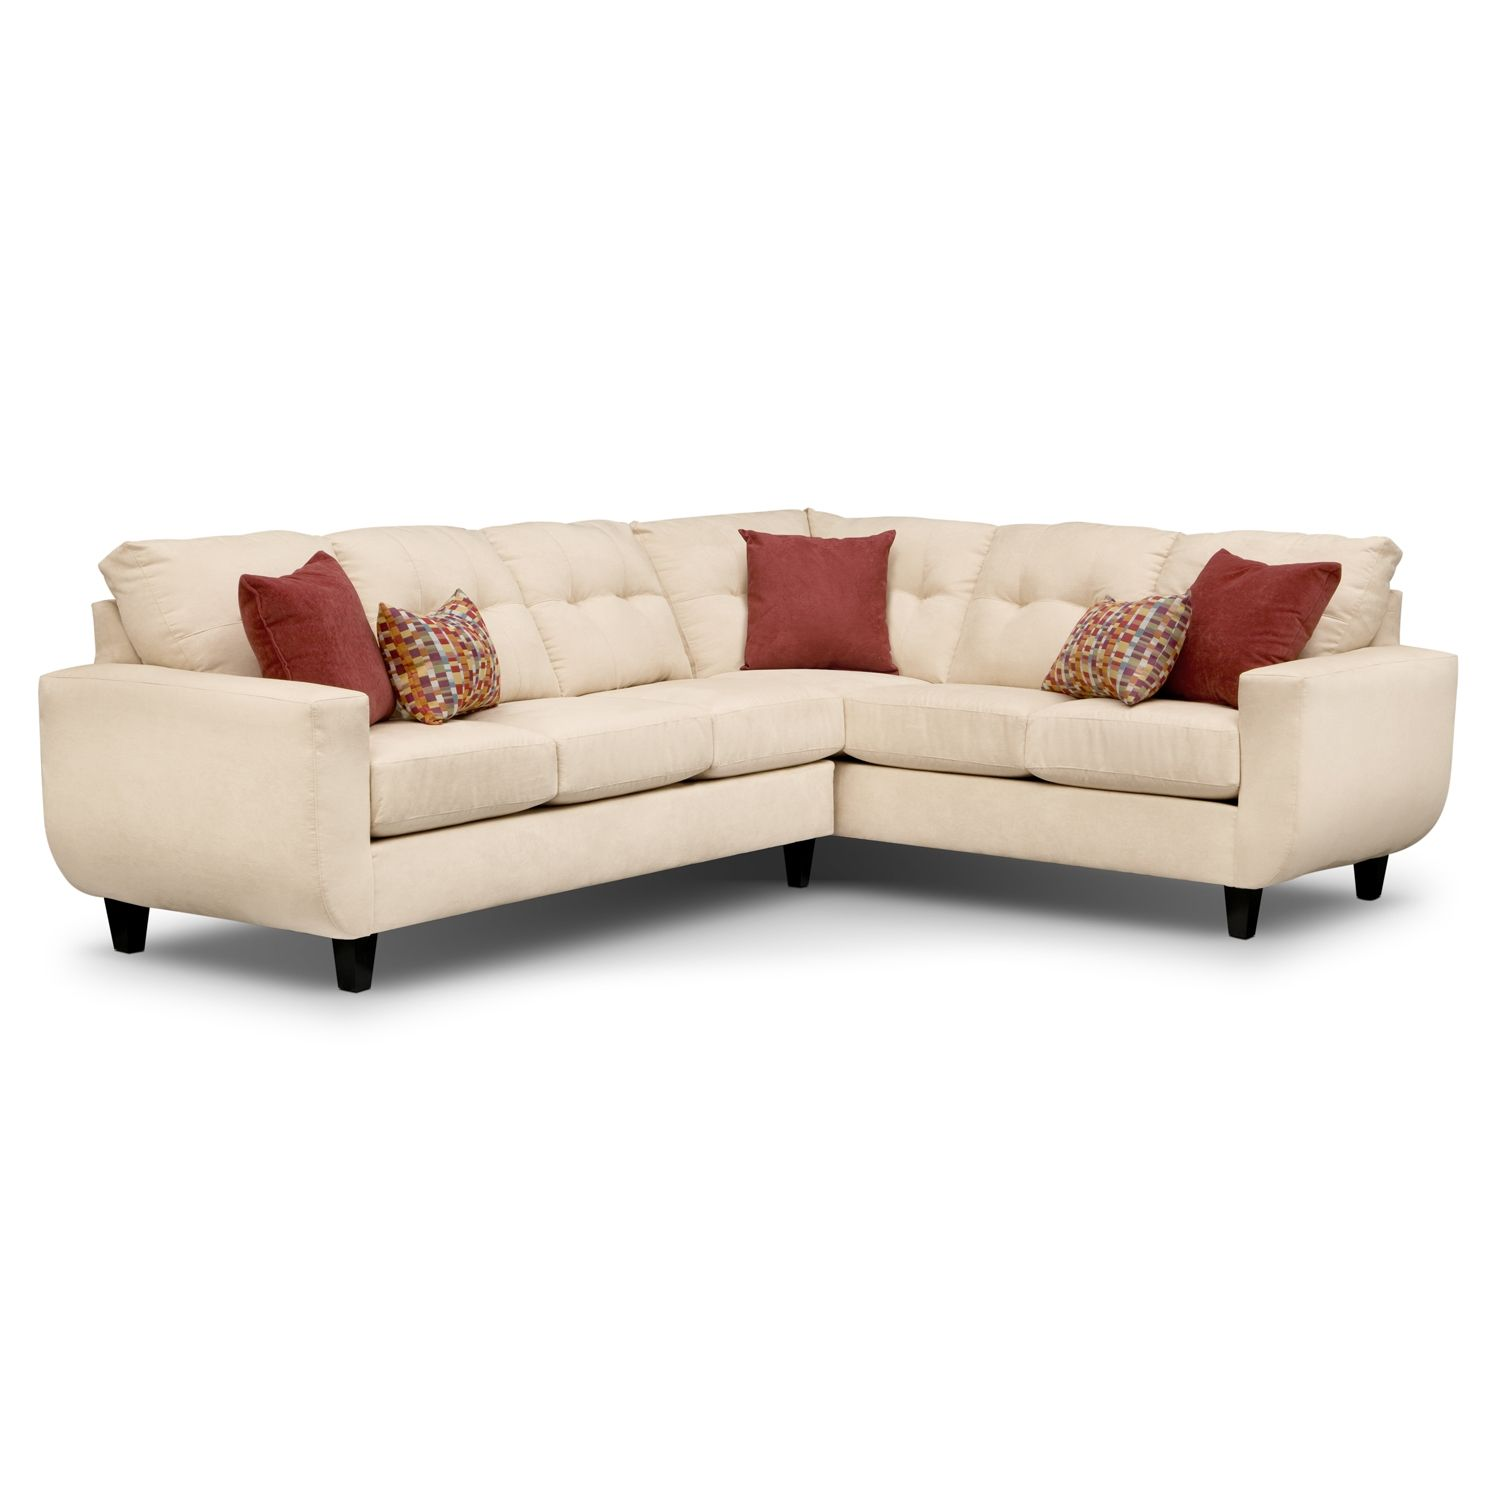 Santa Monica II Upholstery 3 Pc Sectional by Kroehler This is